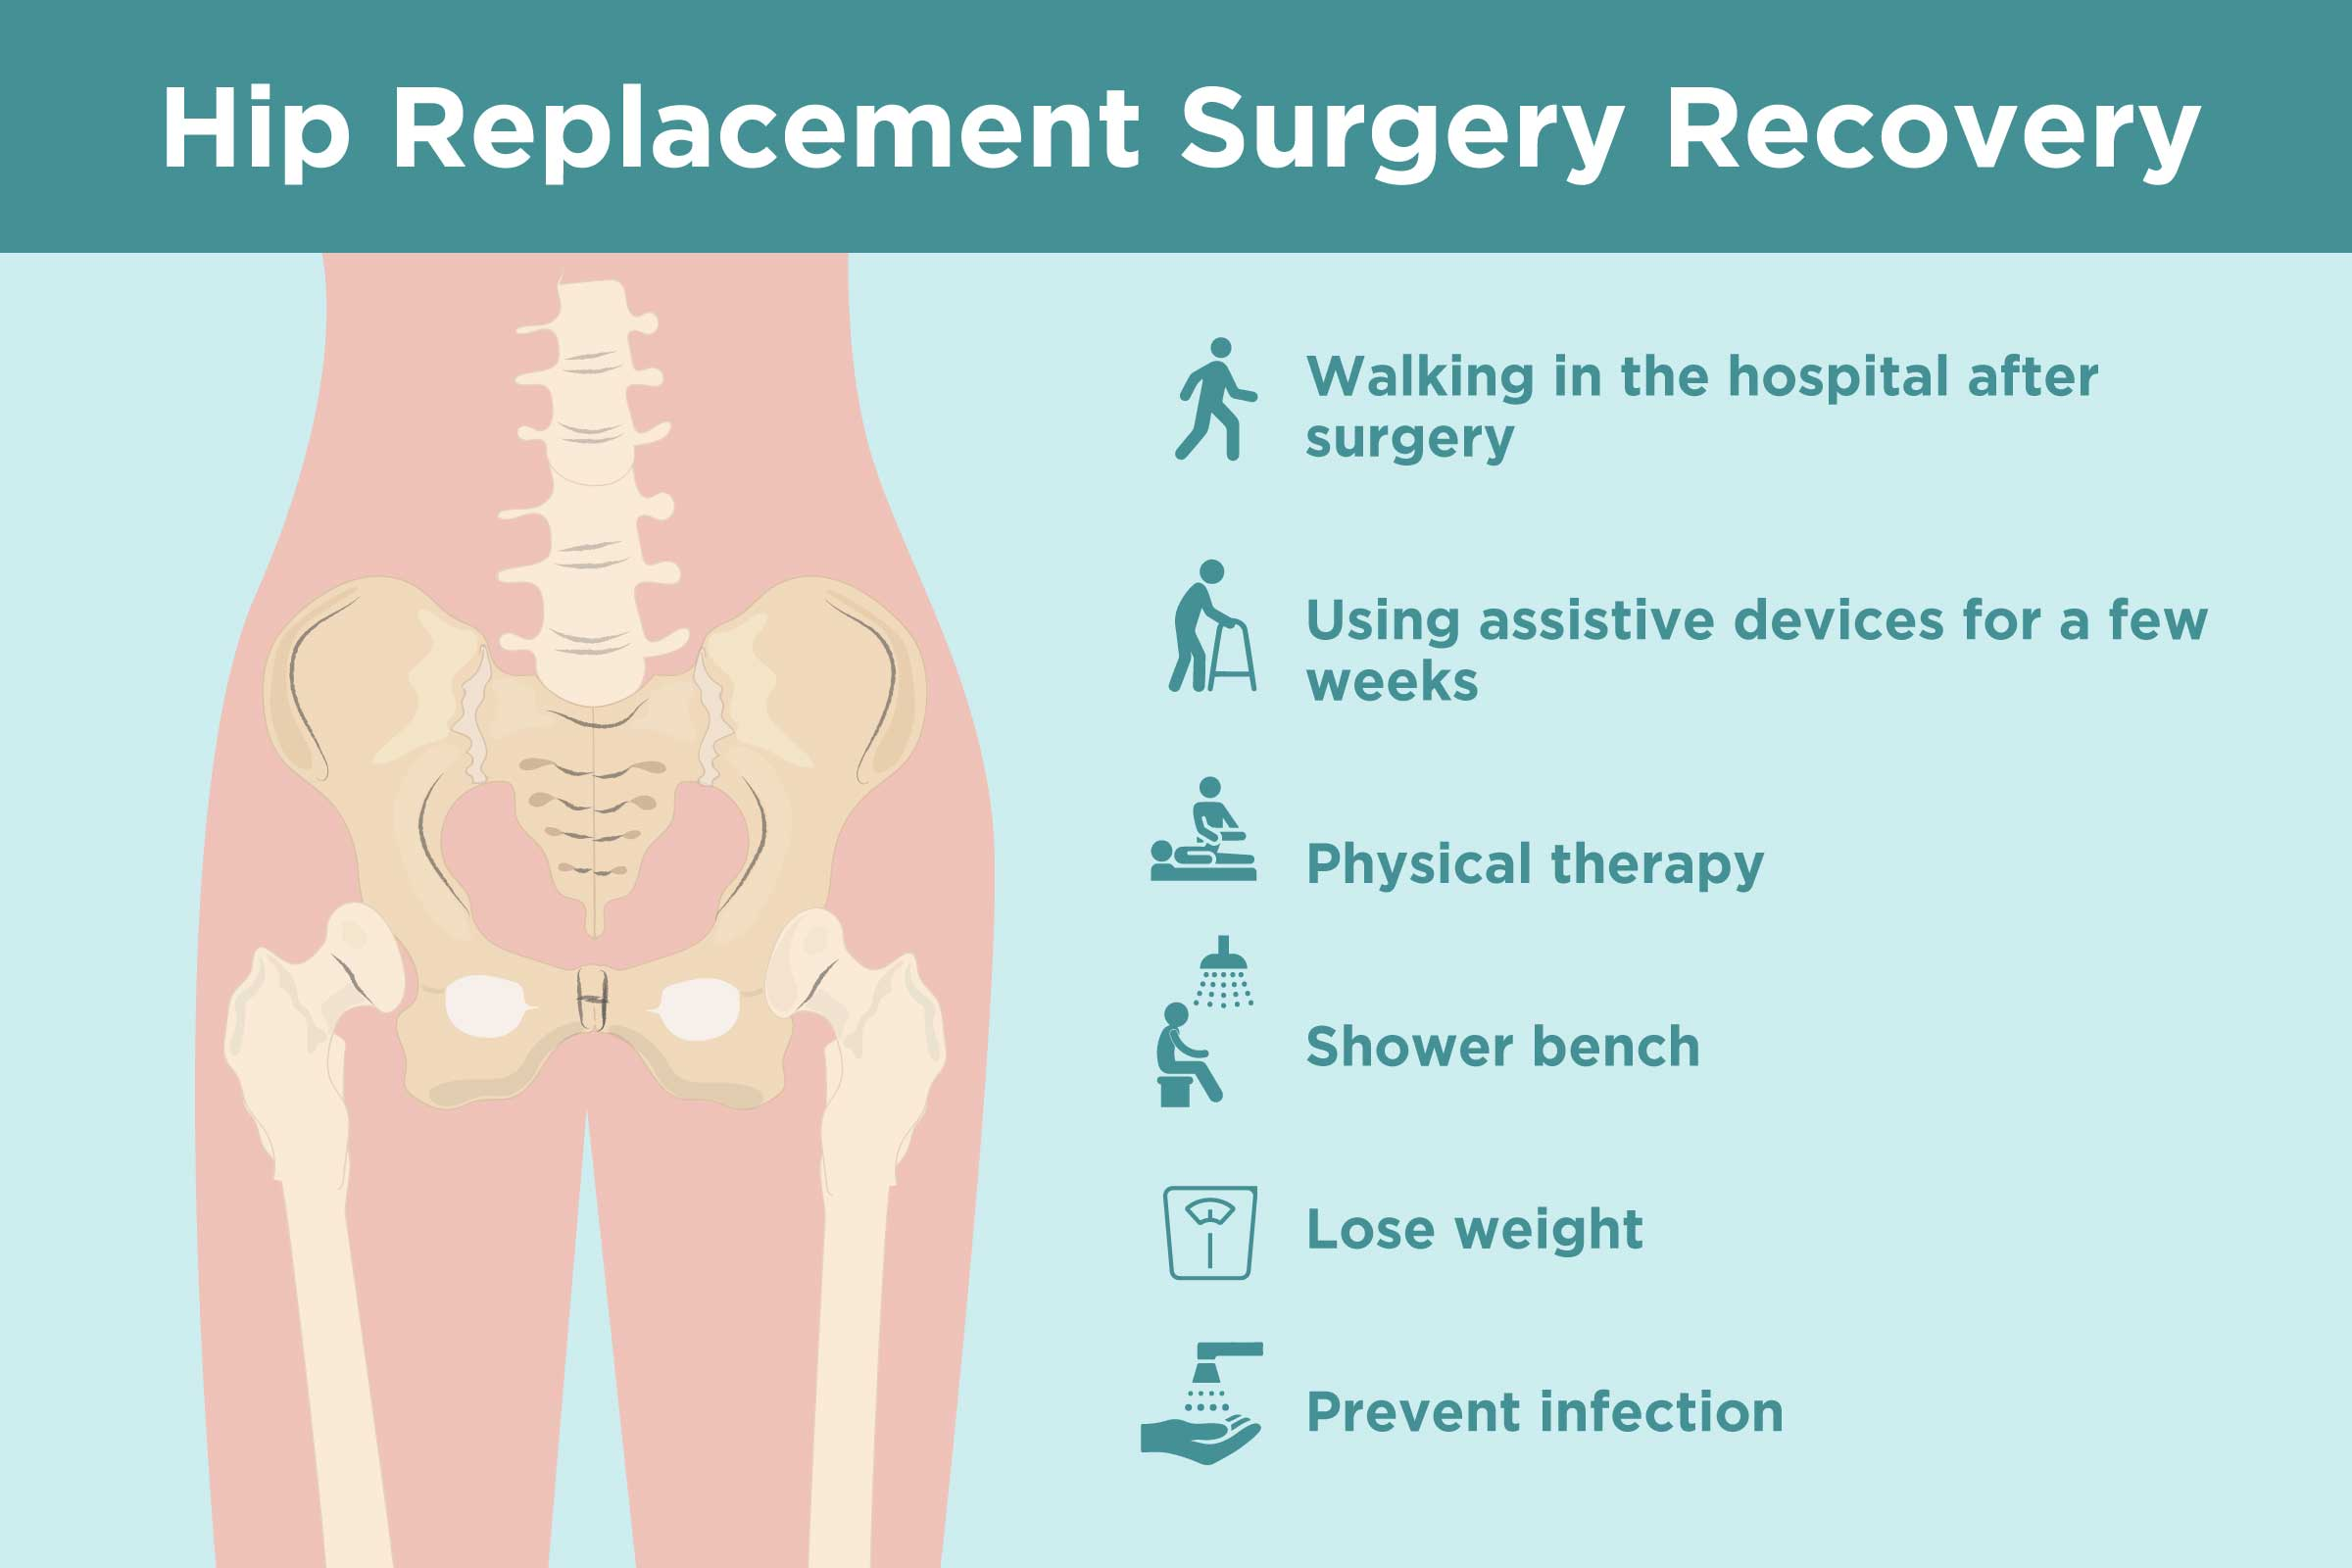 Hip Replacement Surgery Recovery: Tips from Doctors and Patients